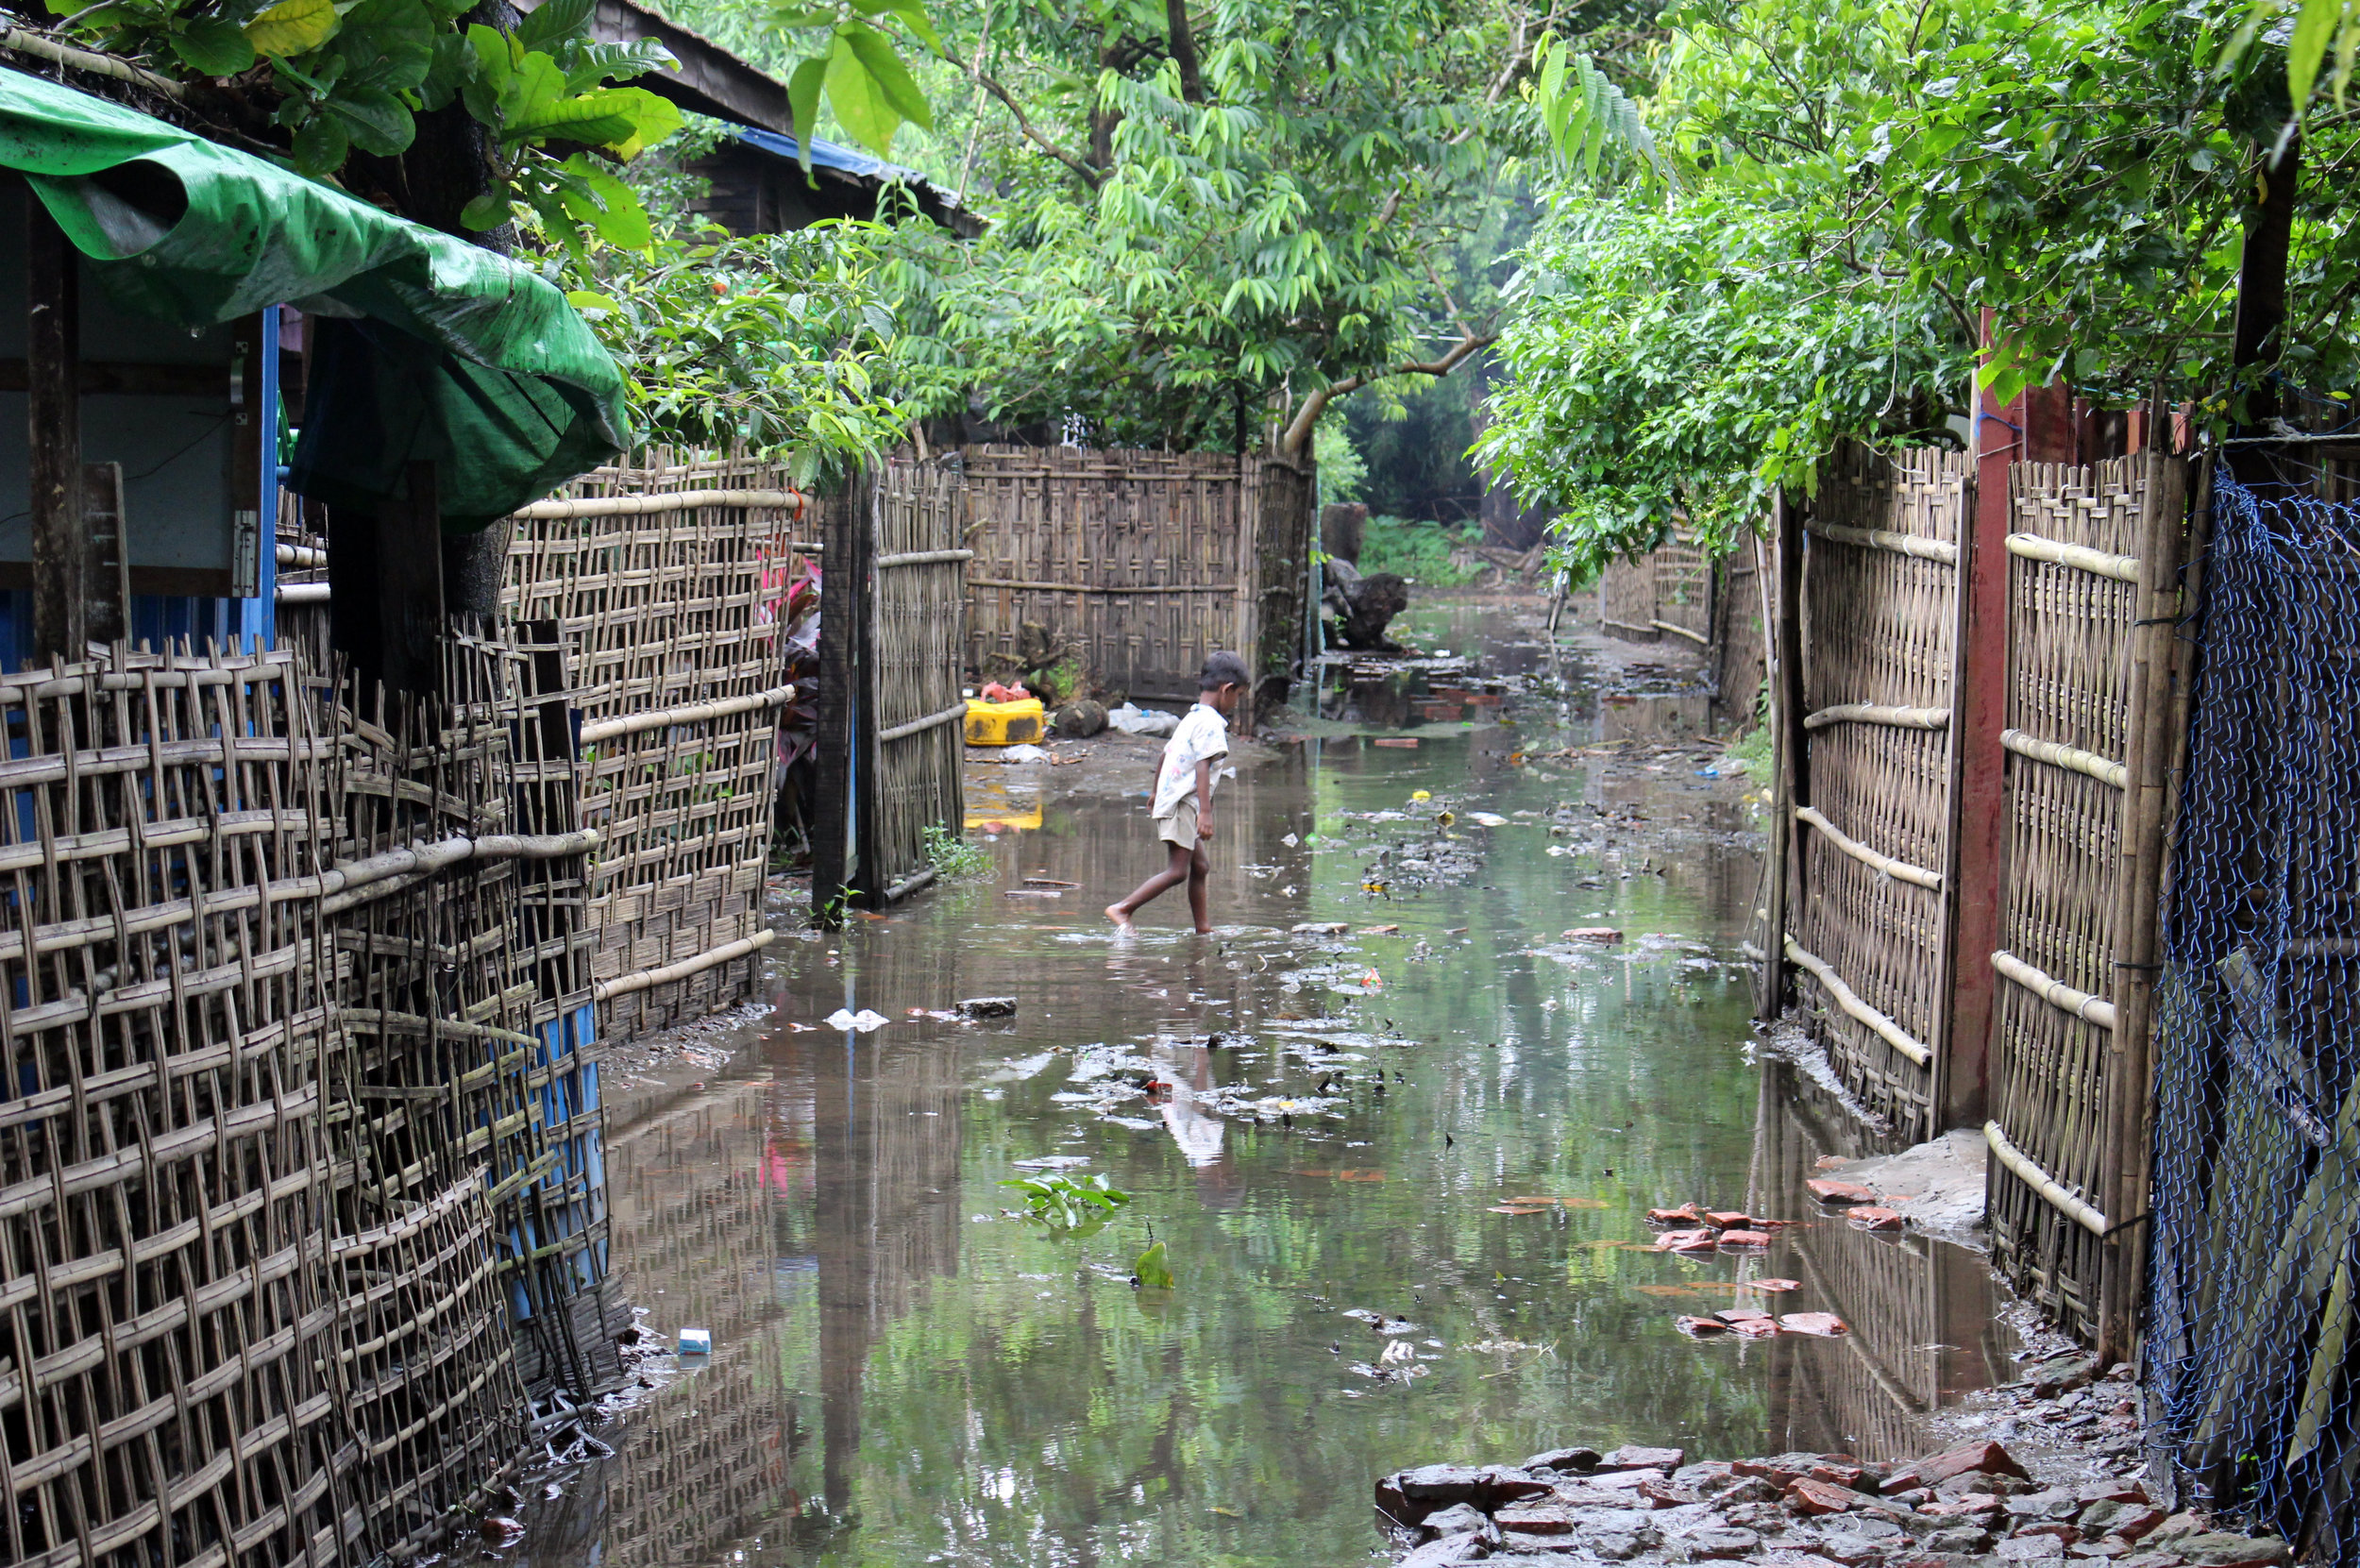 The staff quarters are susceptible to flooding during monsoon season